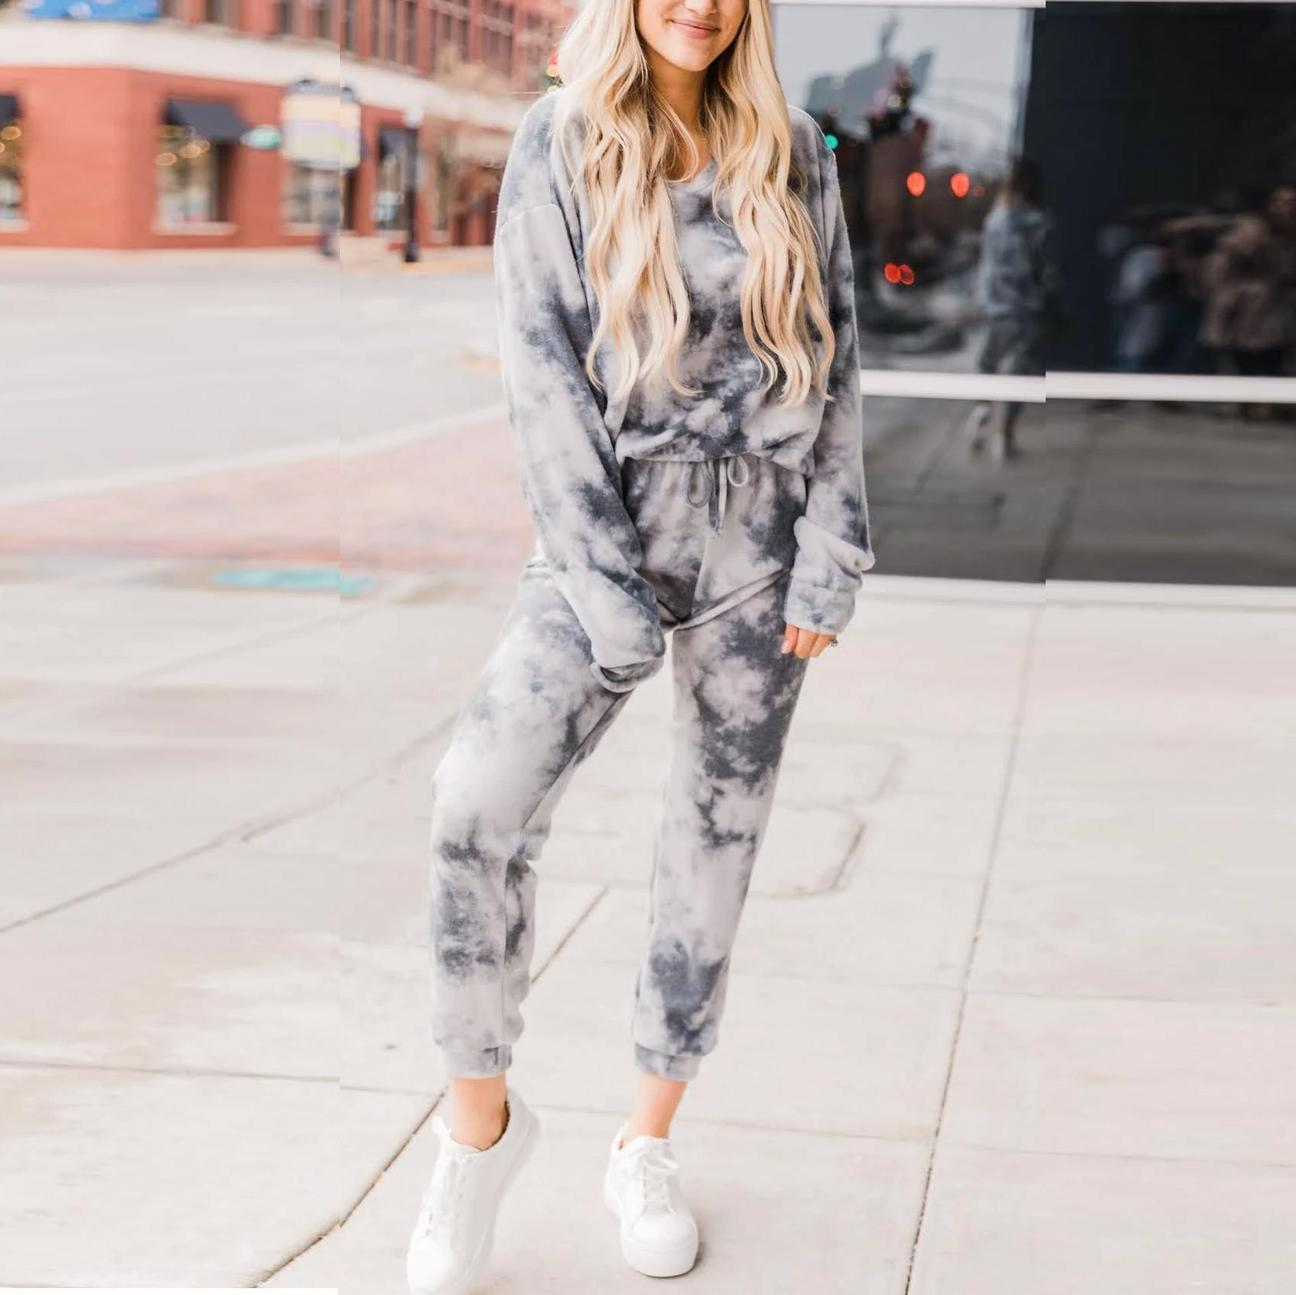 Spring and summer 2020 new European and American home casual wear two-piece women's summer Amazon long sleeve pants suit home